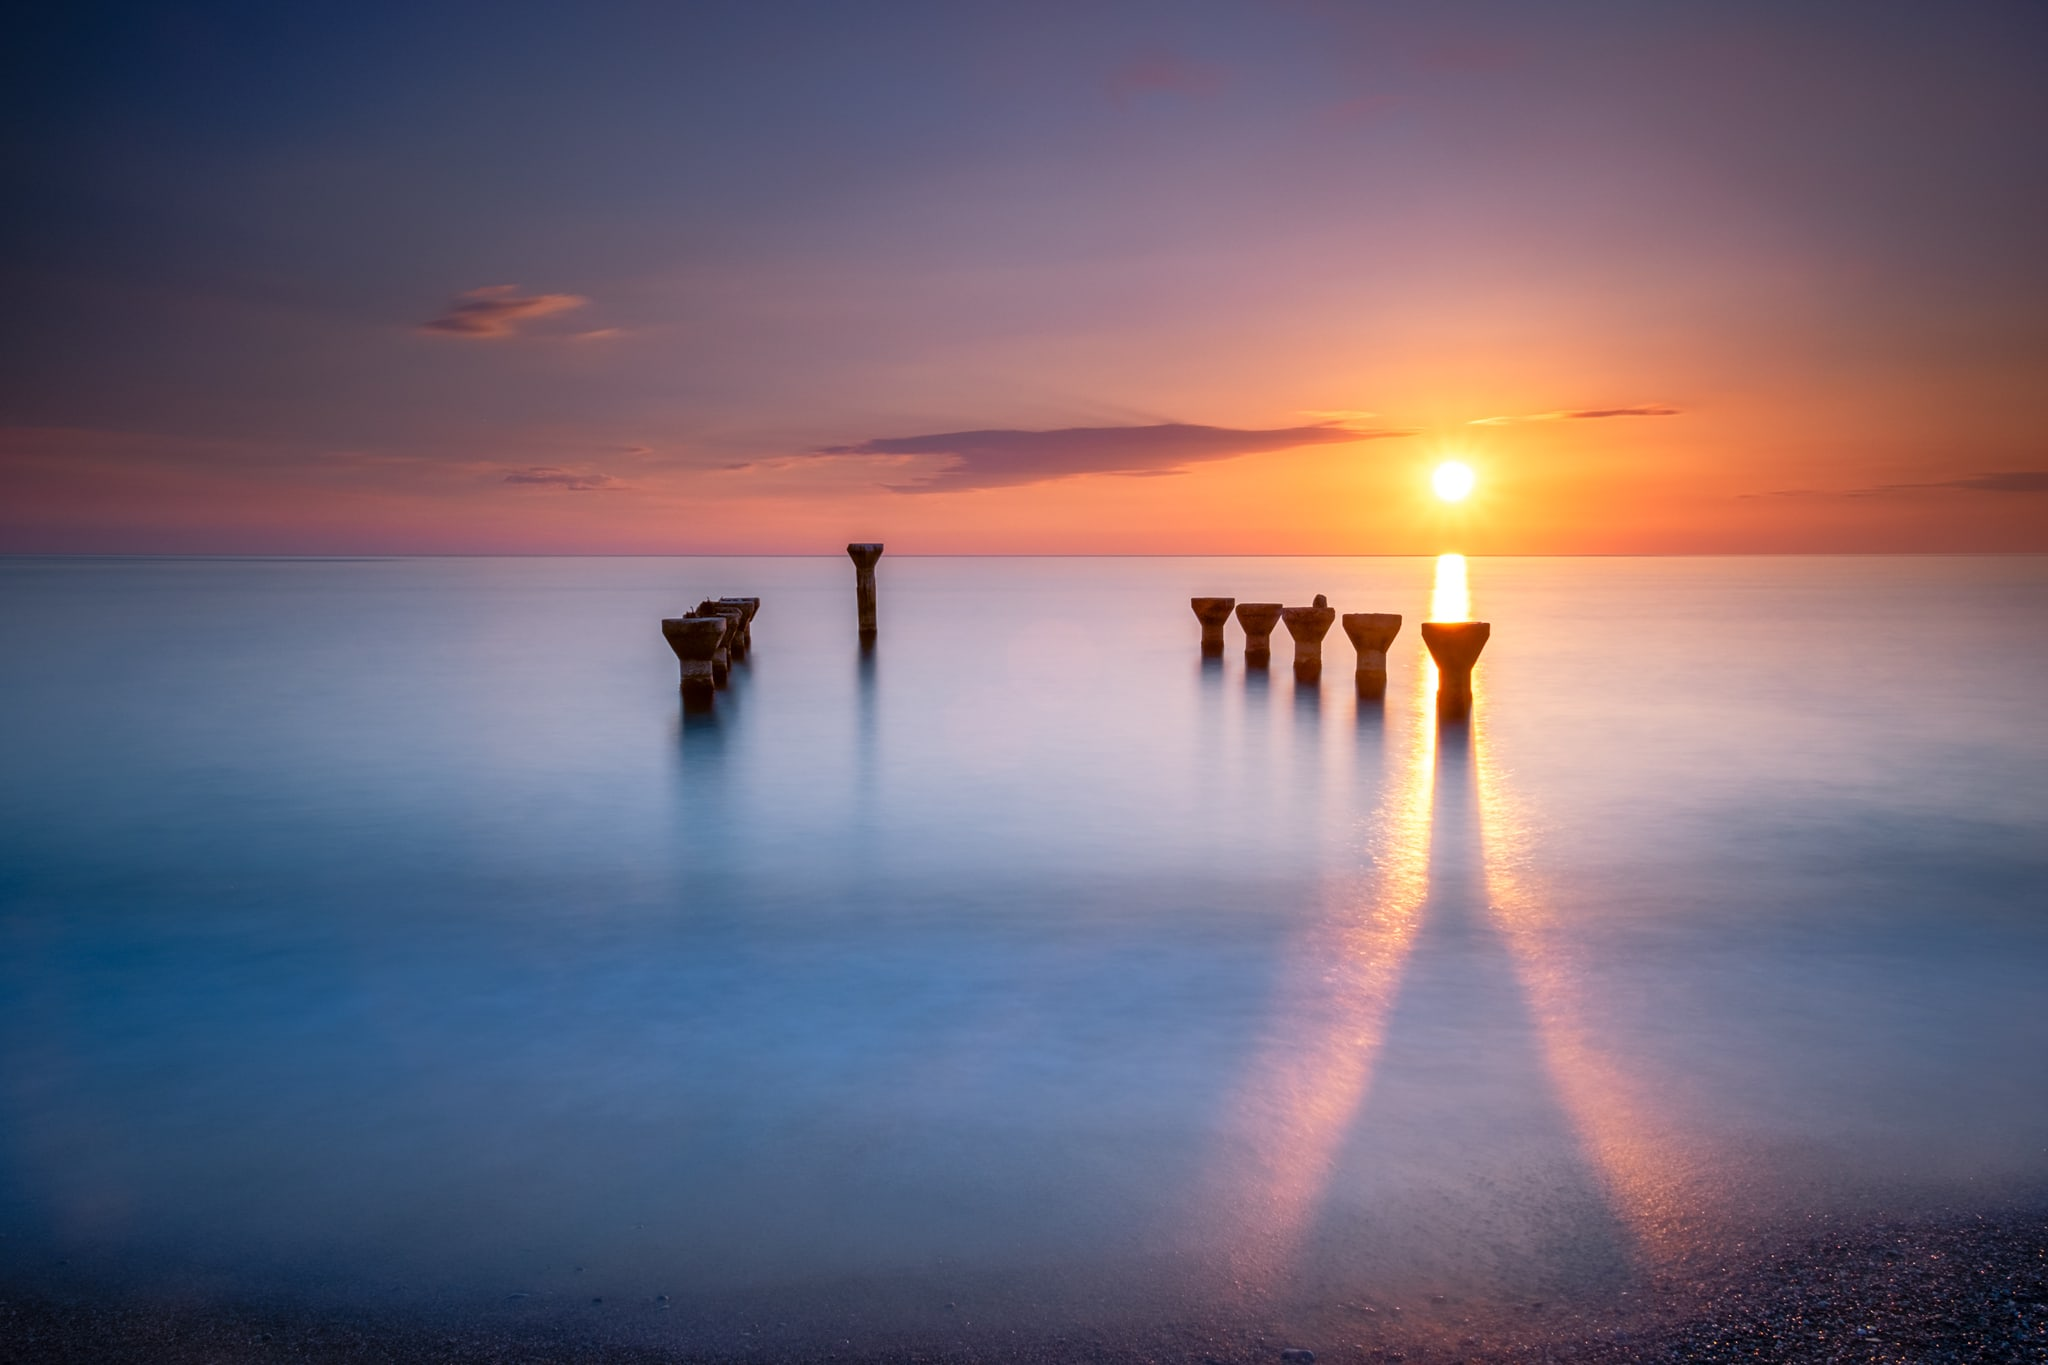 Long exposure photo of remains of a pier at sunset. Lido di Paola, Cosenza, Italy. Sea water is silky and smooth.